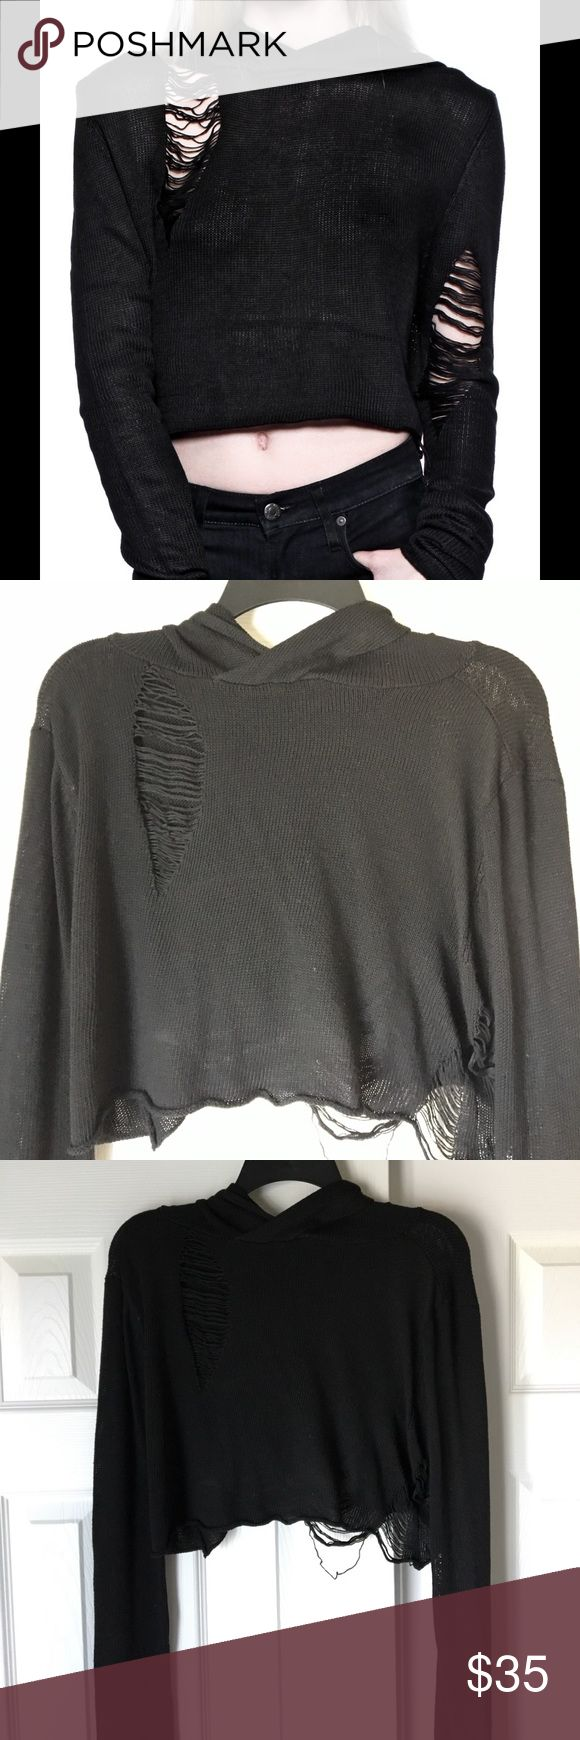 Hooded Tattered Crop Sweater A House of Widow piece. (Listed Hot Topic for visibility) I believe it's unavailable anywhere now. Like new condition. Super spooky and witchy. Has extra long and comfy sleeves to be pushed up easily. Tatters are sturdy and won't unravel easily. Perfectly goth and edgy  Stretchy, could probably for anyone from a small to a large. Hot Topic Sweaters